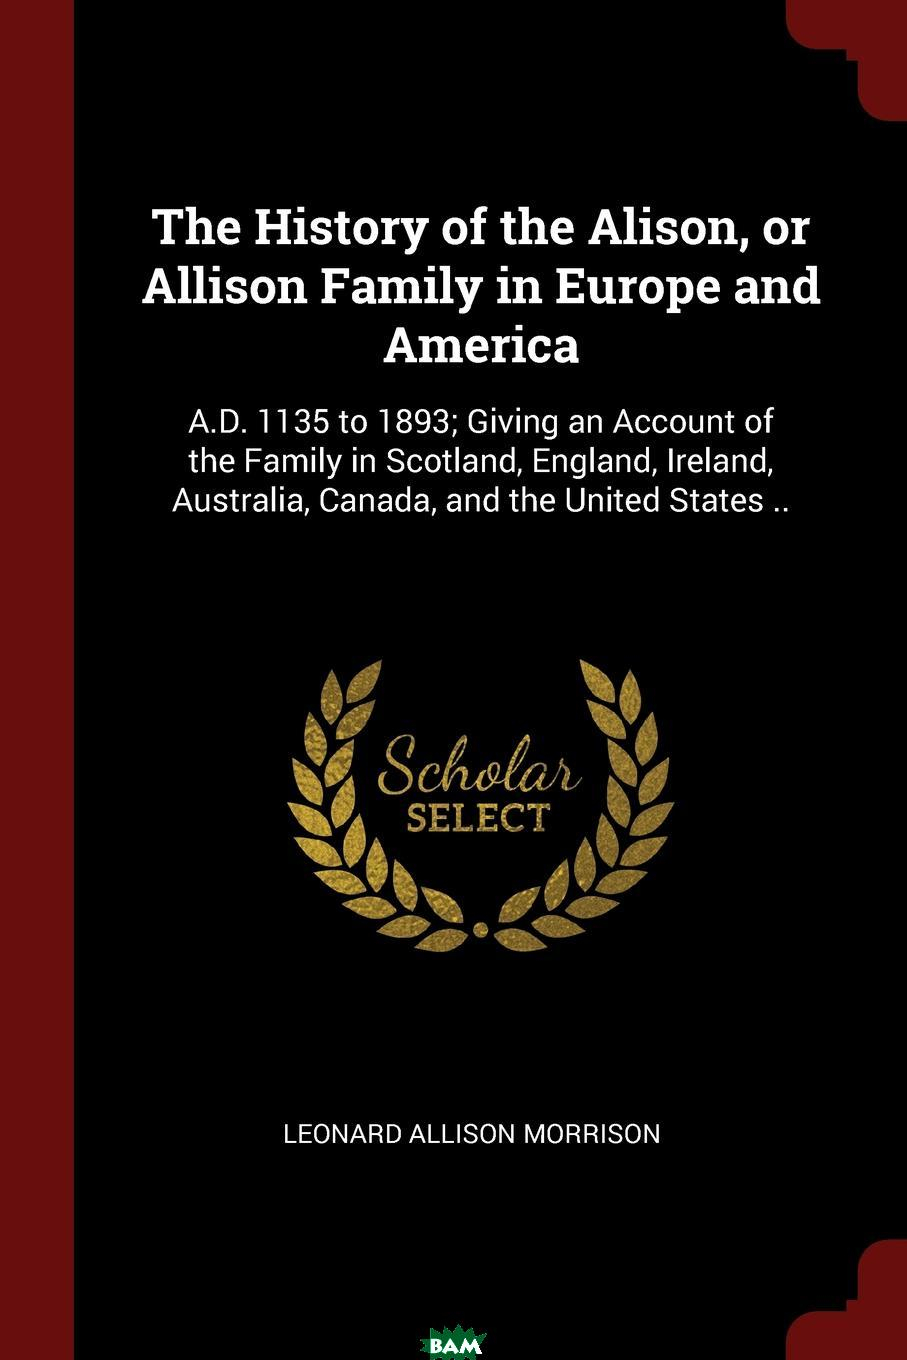 Купить The History of the Alison, or Allison Family in Europe and America. A.D. 1135 to 1893; Giving an Account of the Family in Scotland, England, Ireland, Australia, Canada, and the United States .., Leonard Allison Morrison, 9781375964548